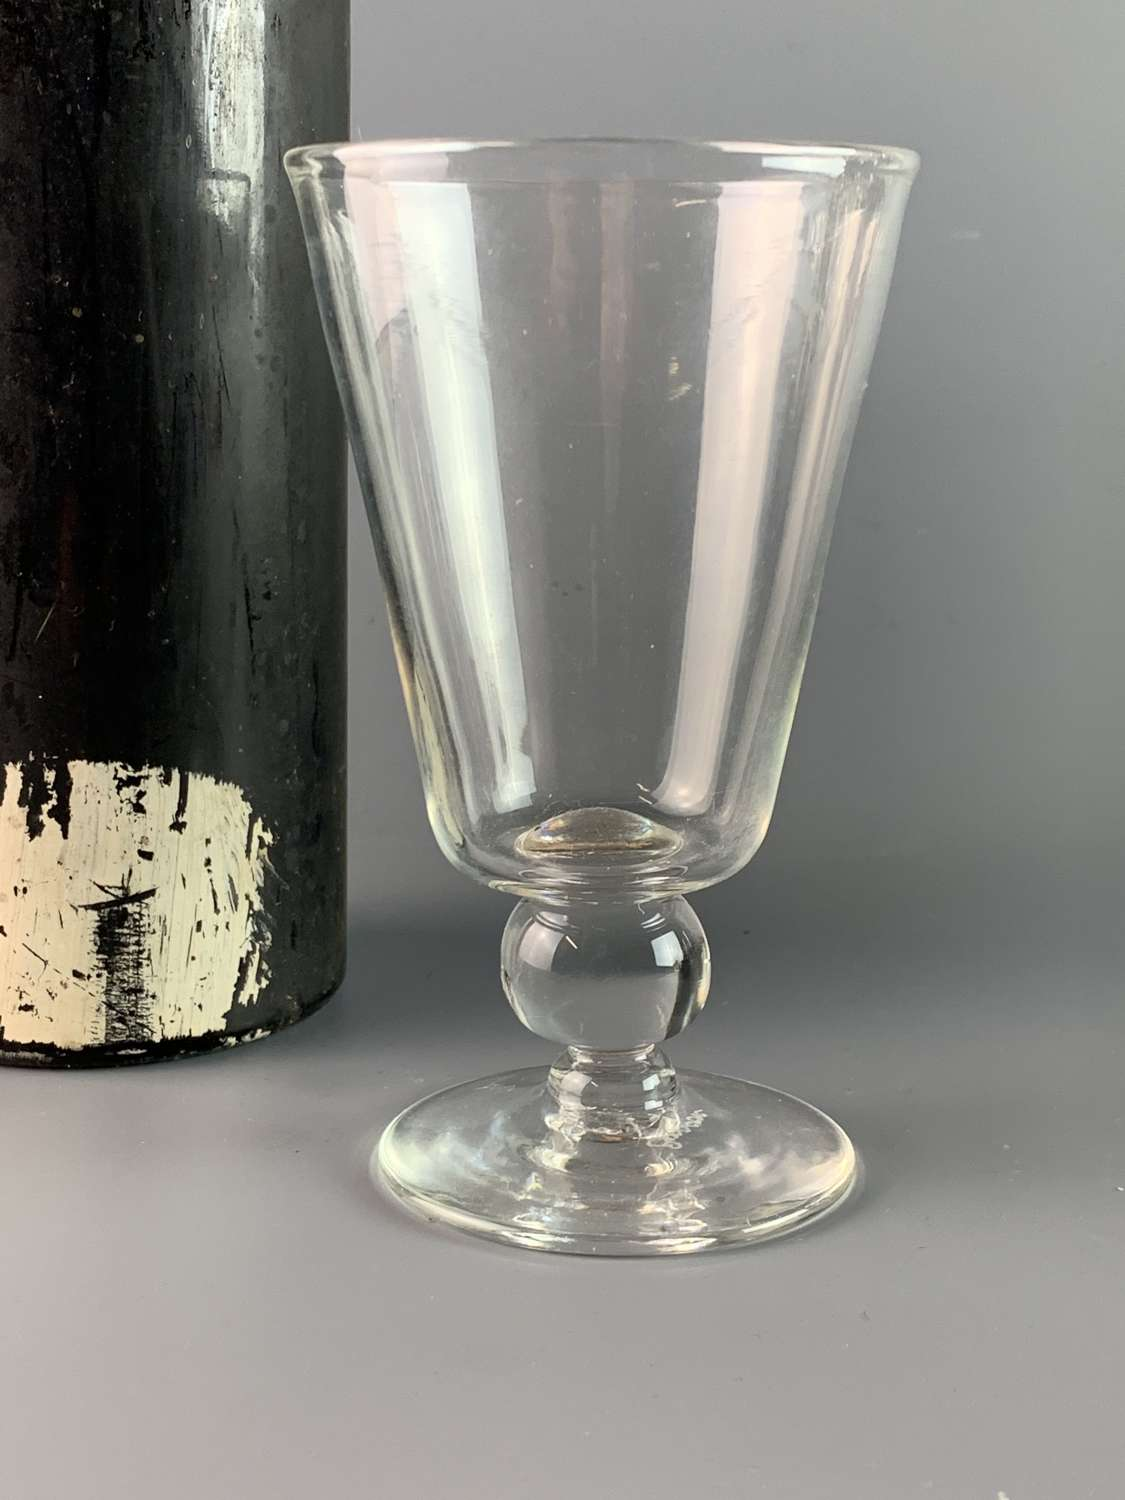 Early 19th Century Wine Glass with Ball Knop Stem